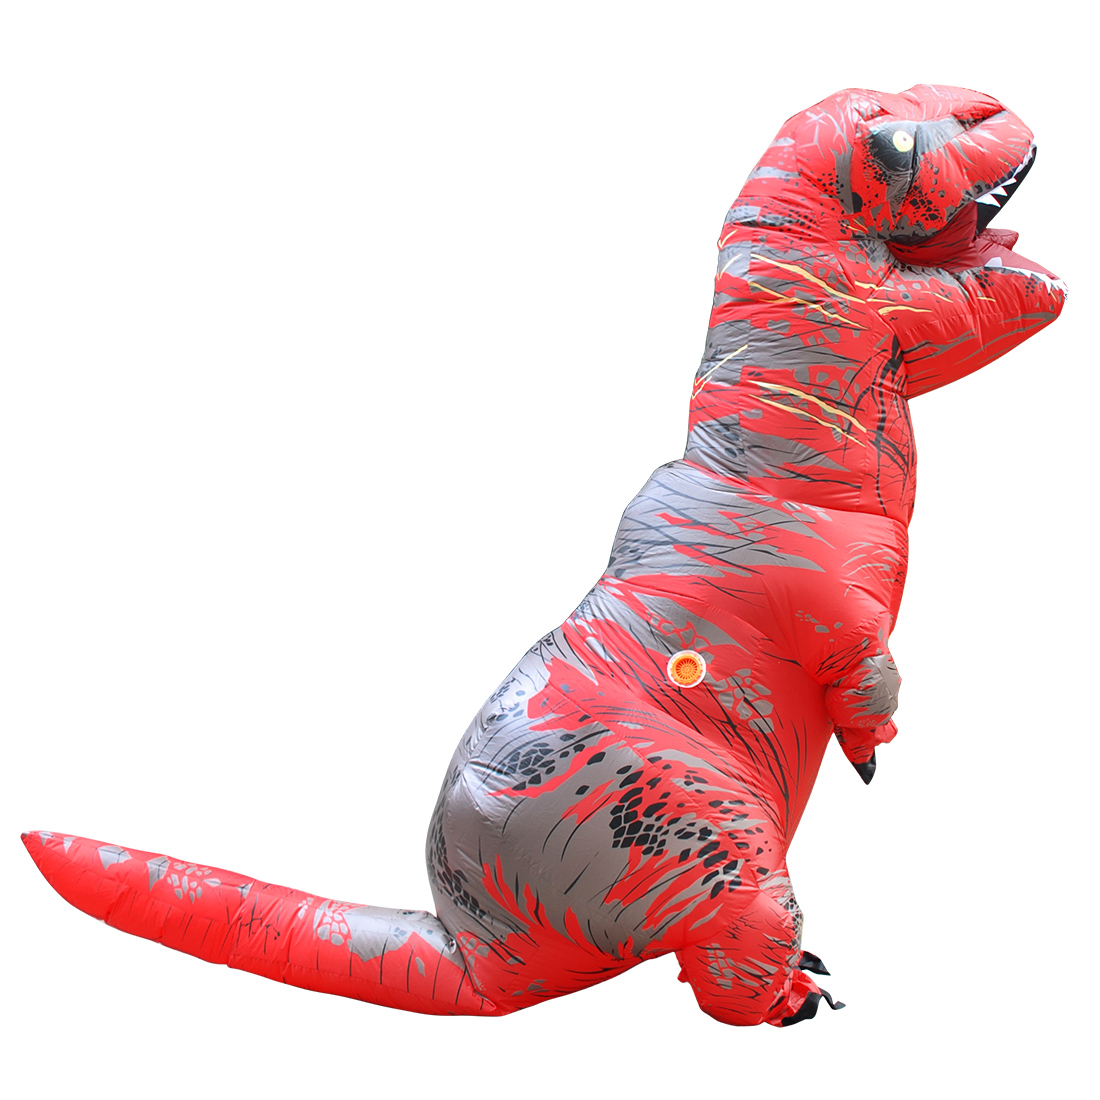 Disfraces Adultos Red T-REX Costumes Inflatable Dinosaur Costume Halloween Costume for Women Tyrannosaurus Jumpsuit Carnival